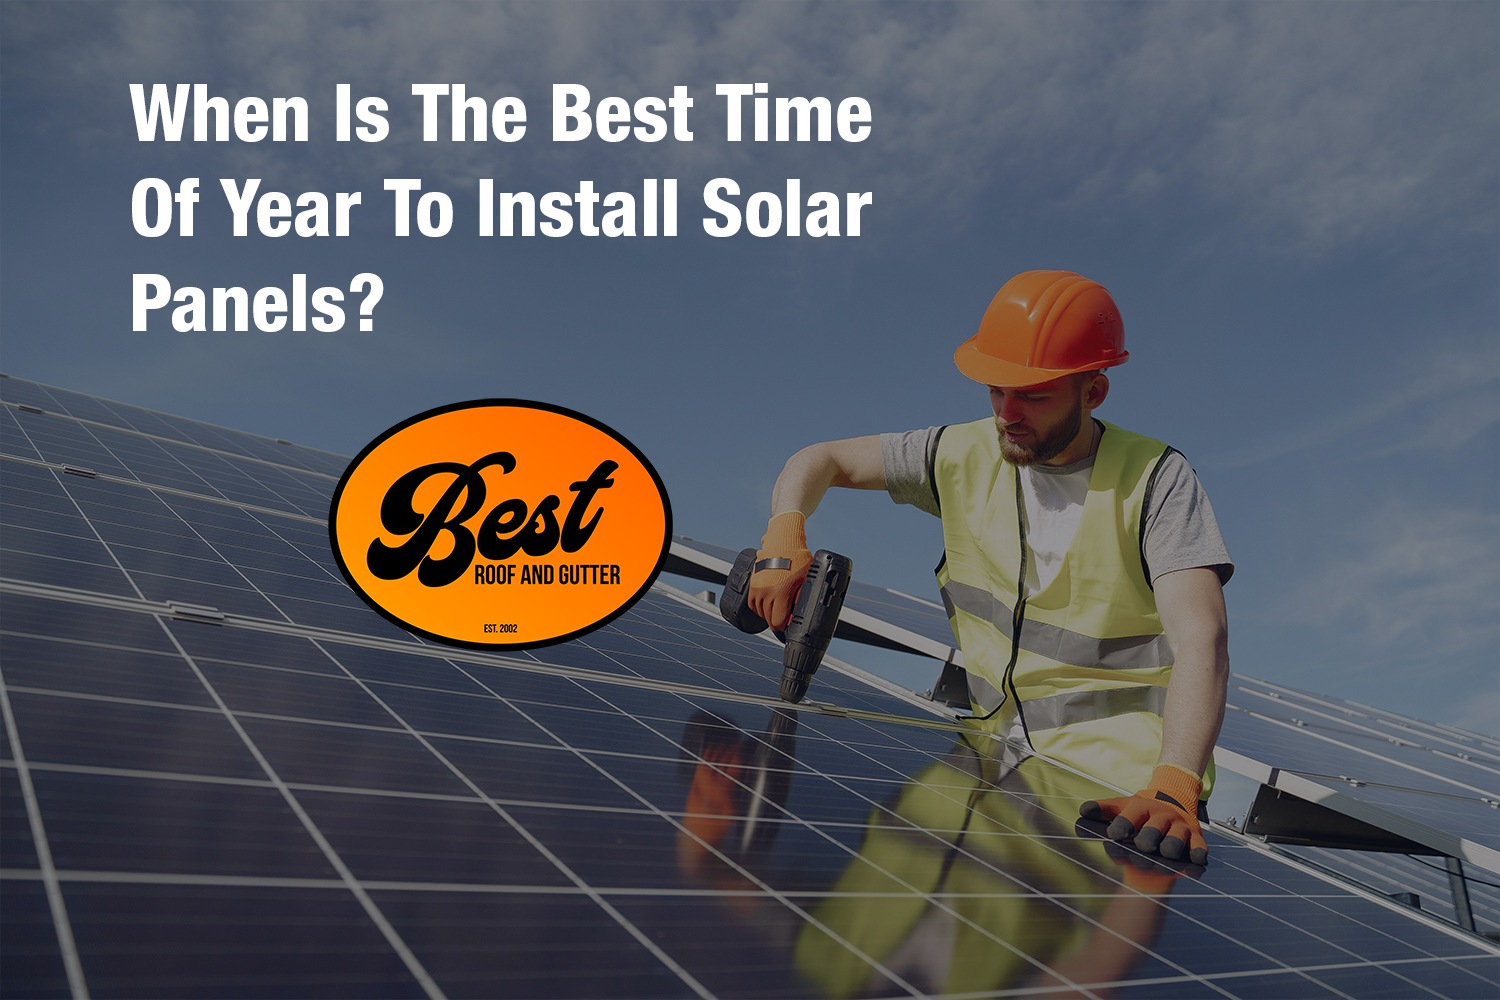 When Is The Best Time Of Year To Install Solar Panels